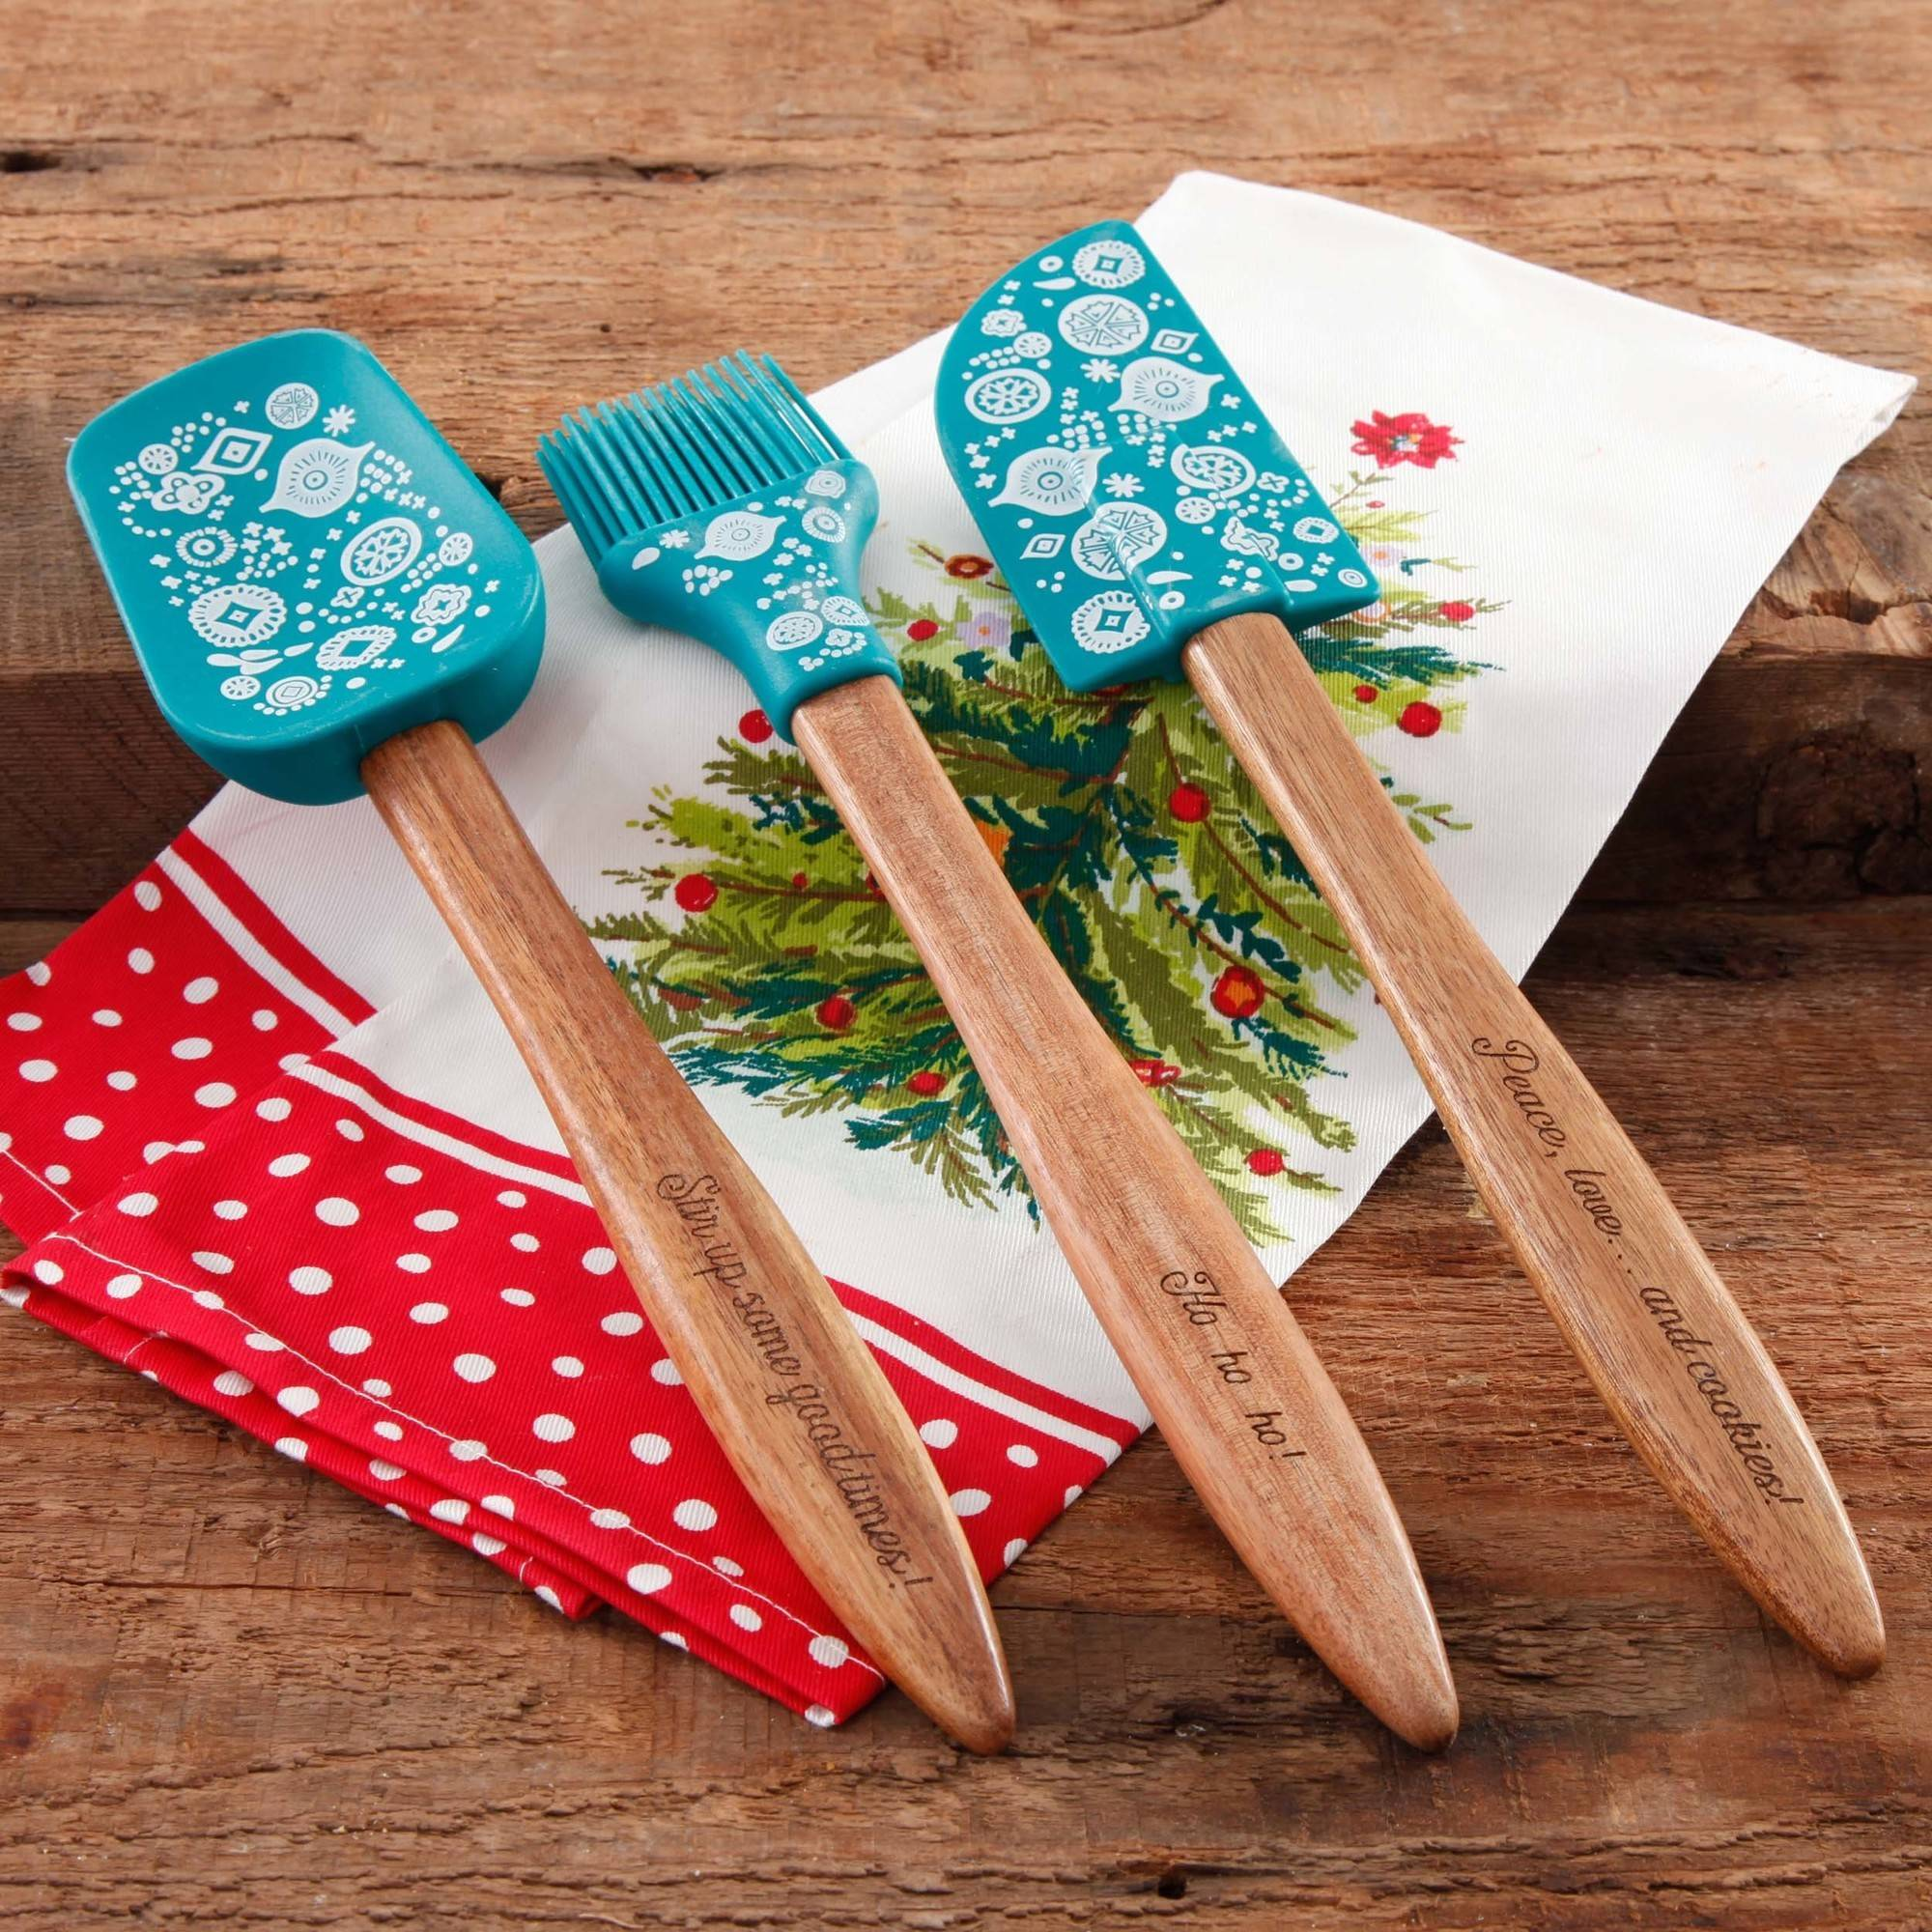 The Pioneer Woman 3-Piece Silicone Head Utensil Set with Acacia Wood Handle